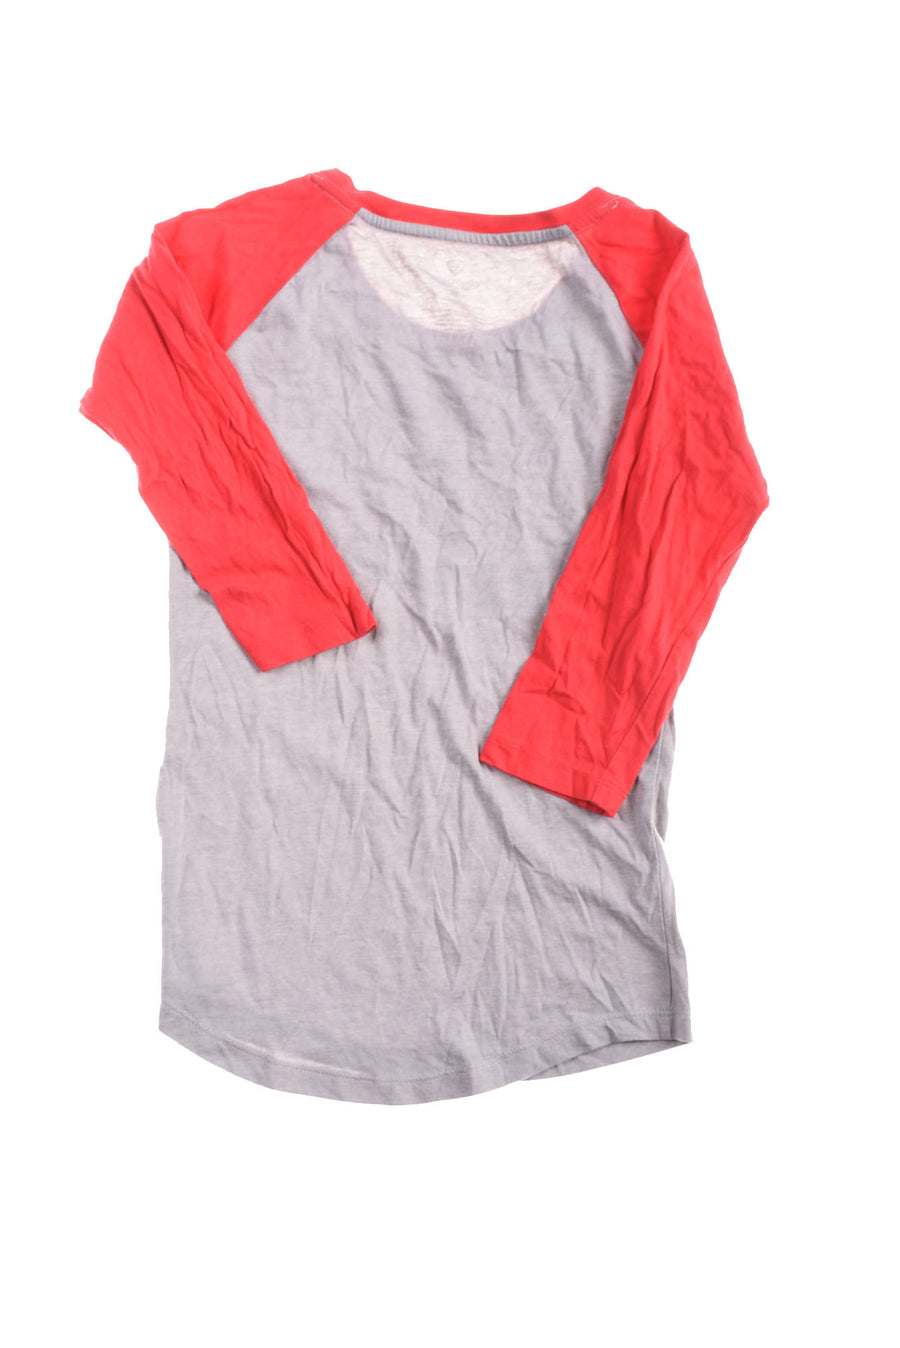 USED Colosseum Women's Top Small Red & Gray